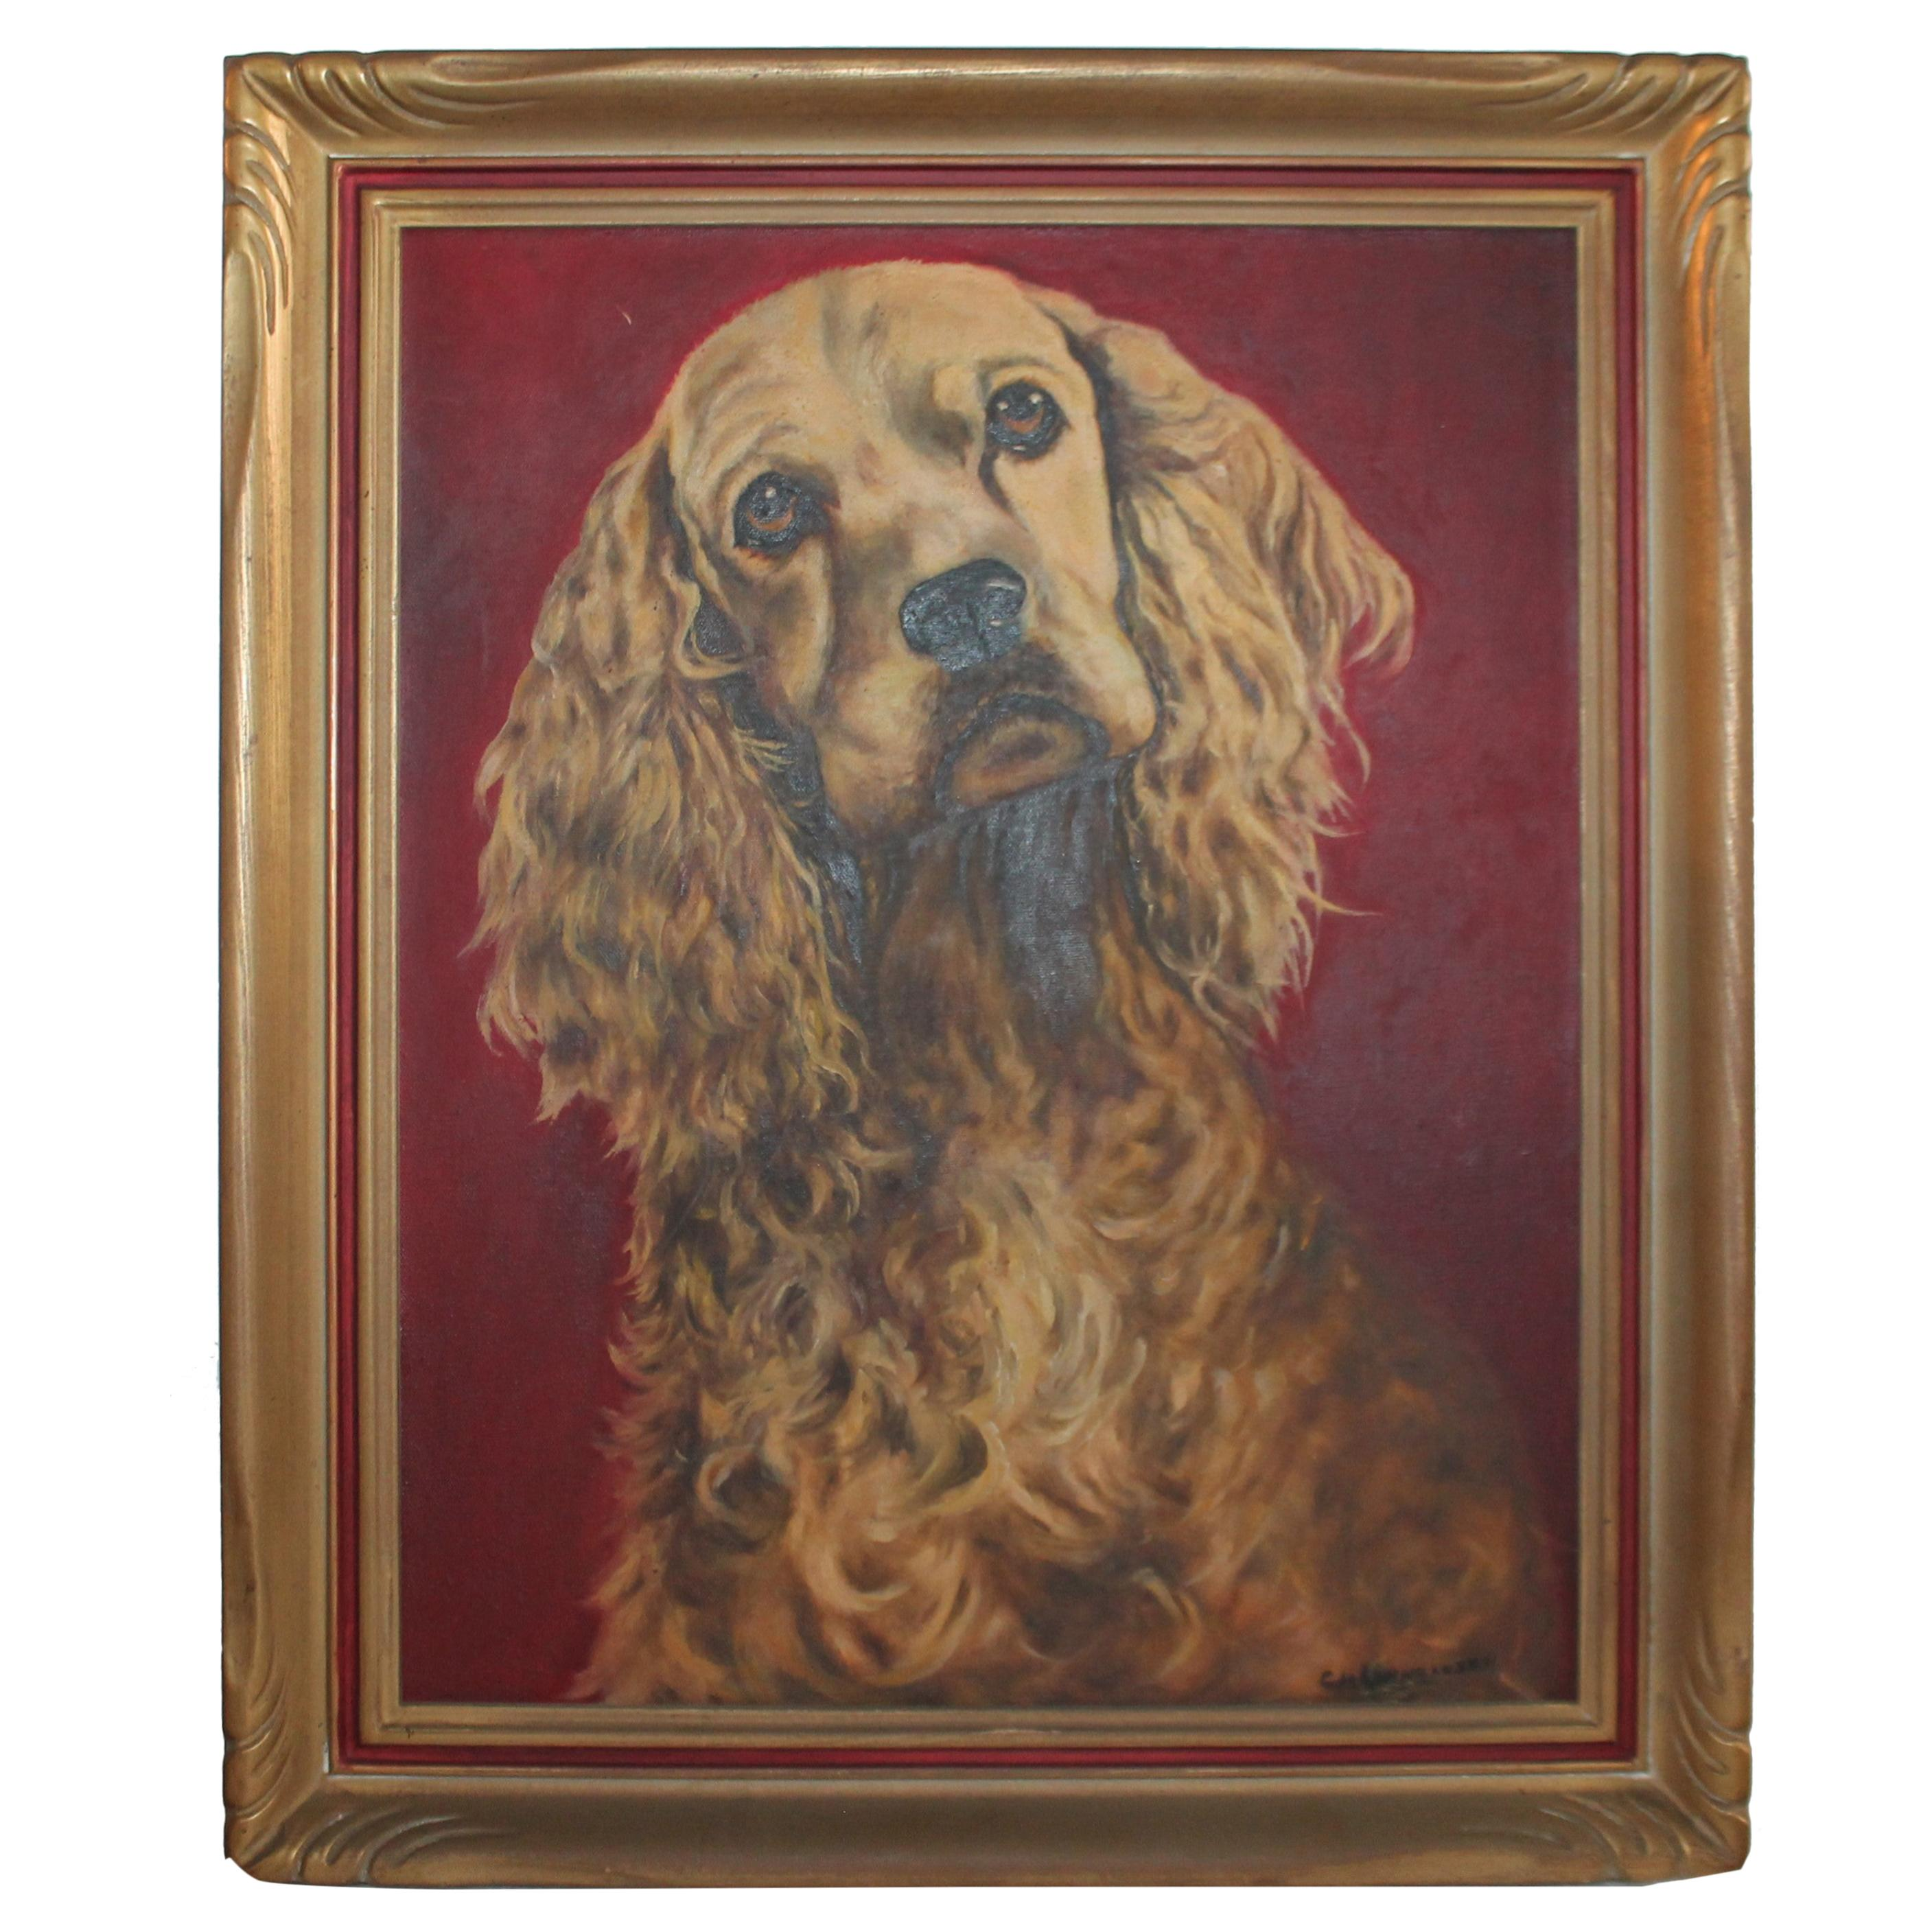 Early Oil Painting of a Dog in Original Frame